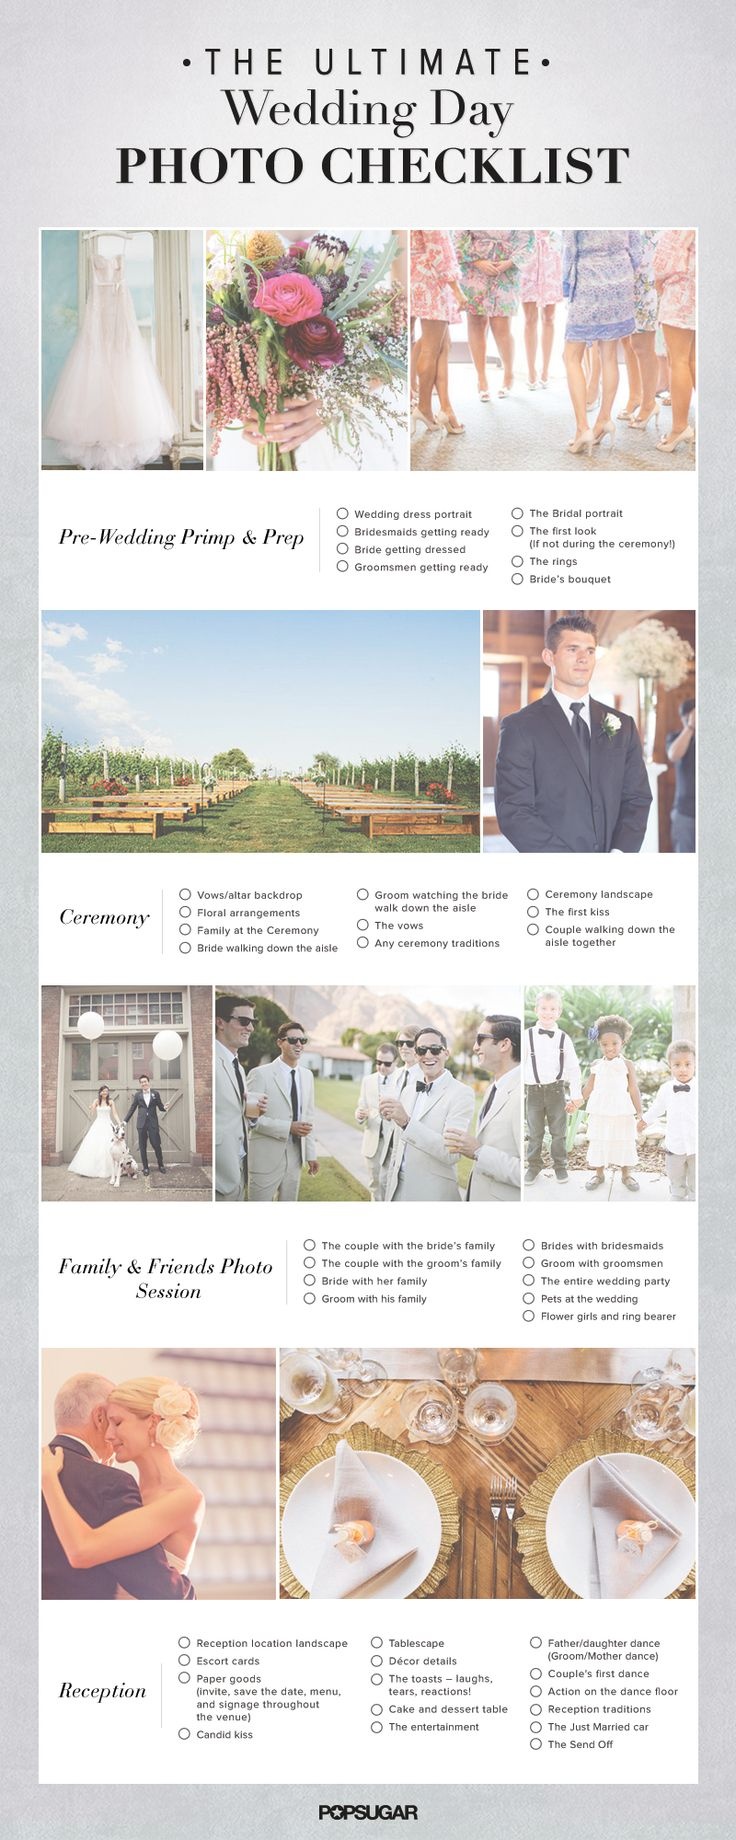 The Ultimate Wedding Day Photo Checklist — hand this to your photographer!